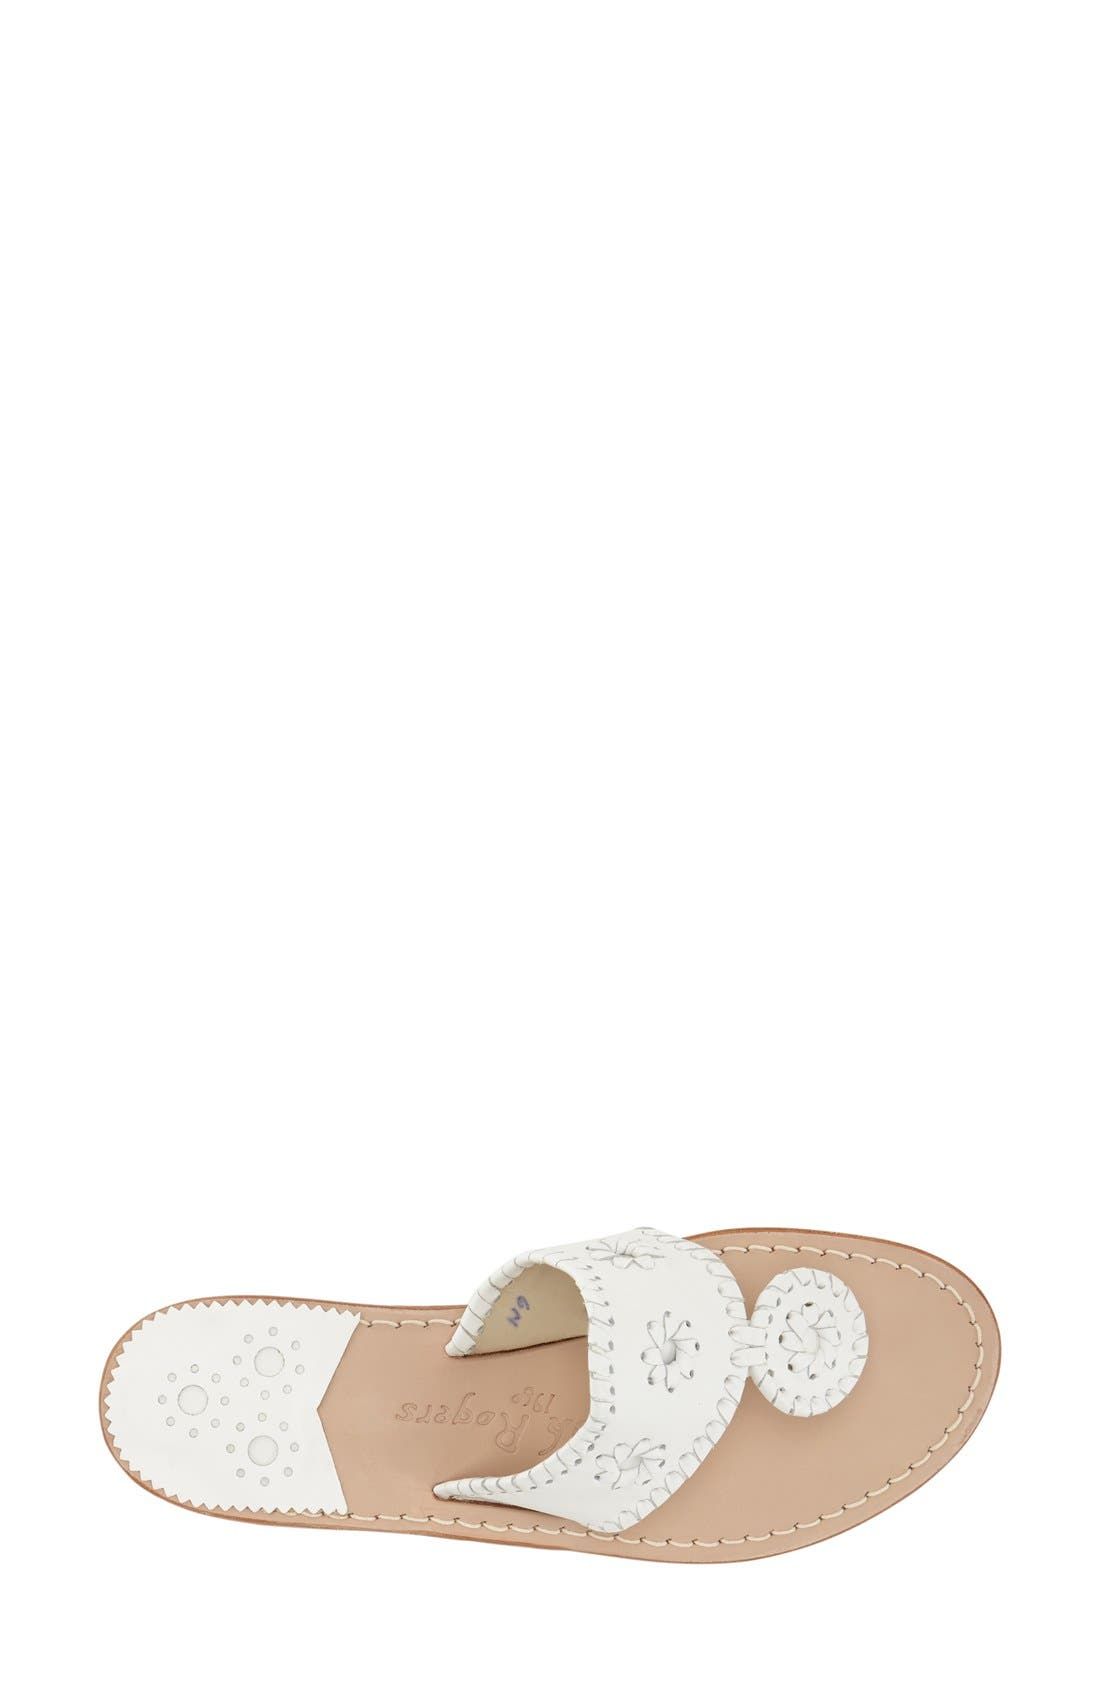 Alternate Image 3  - Jack Rogers 'Palm Beach' Sandal